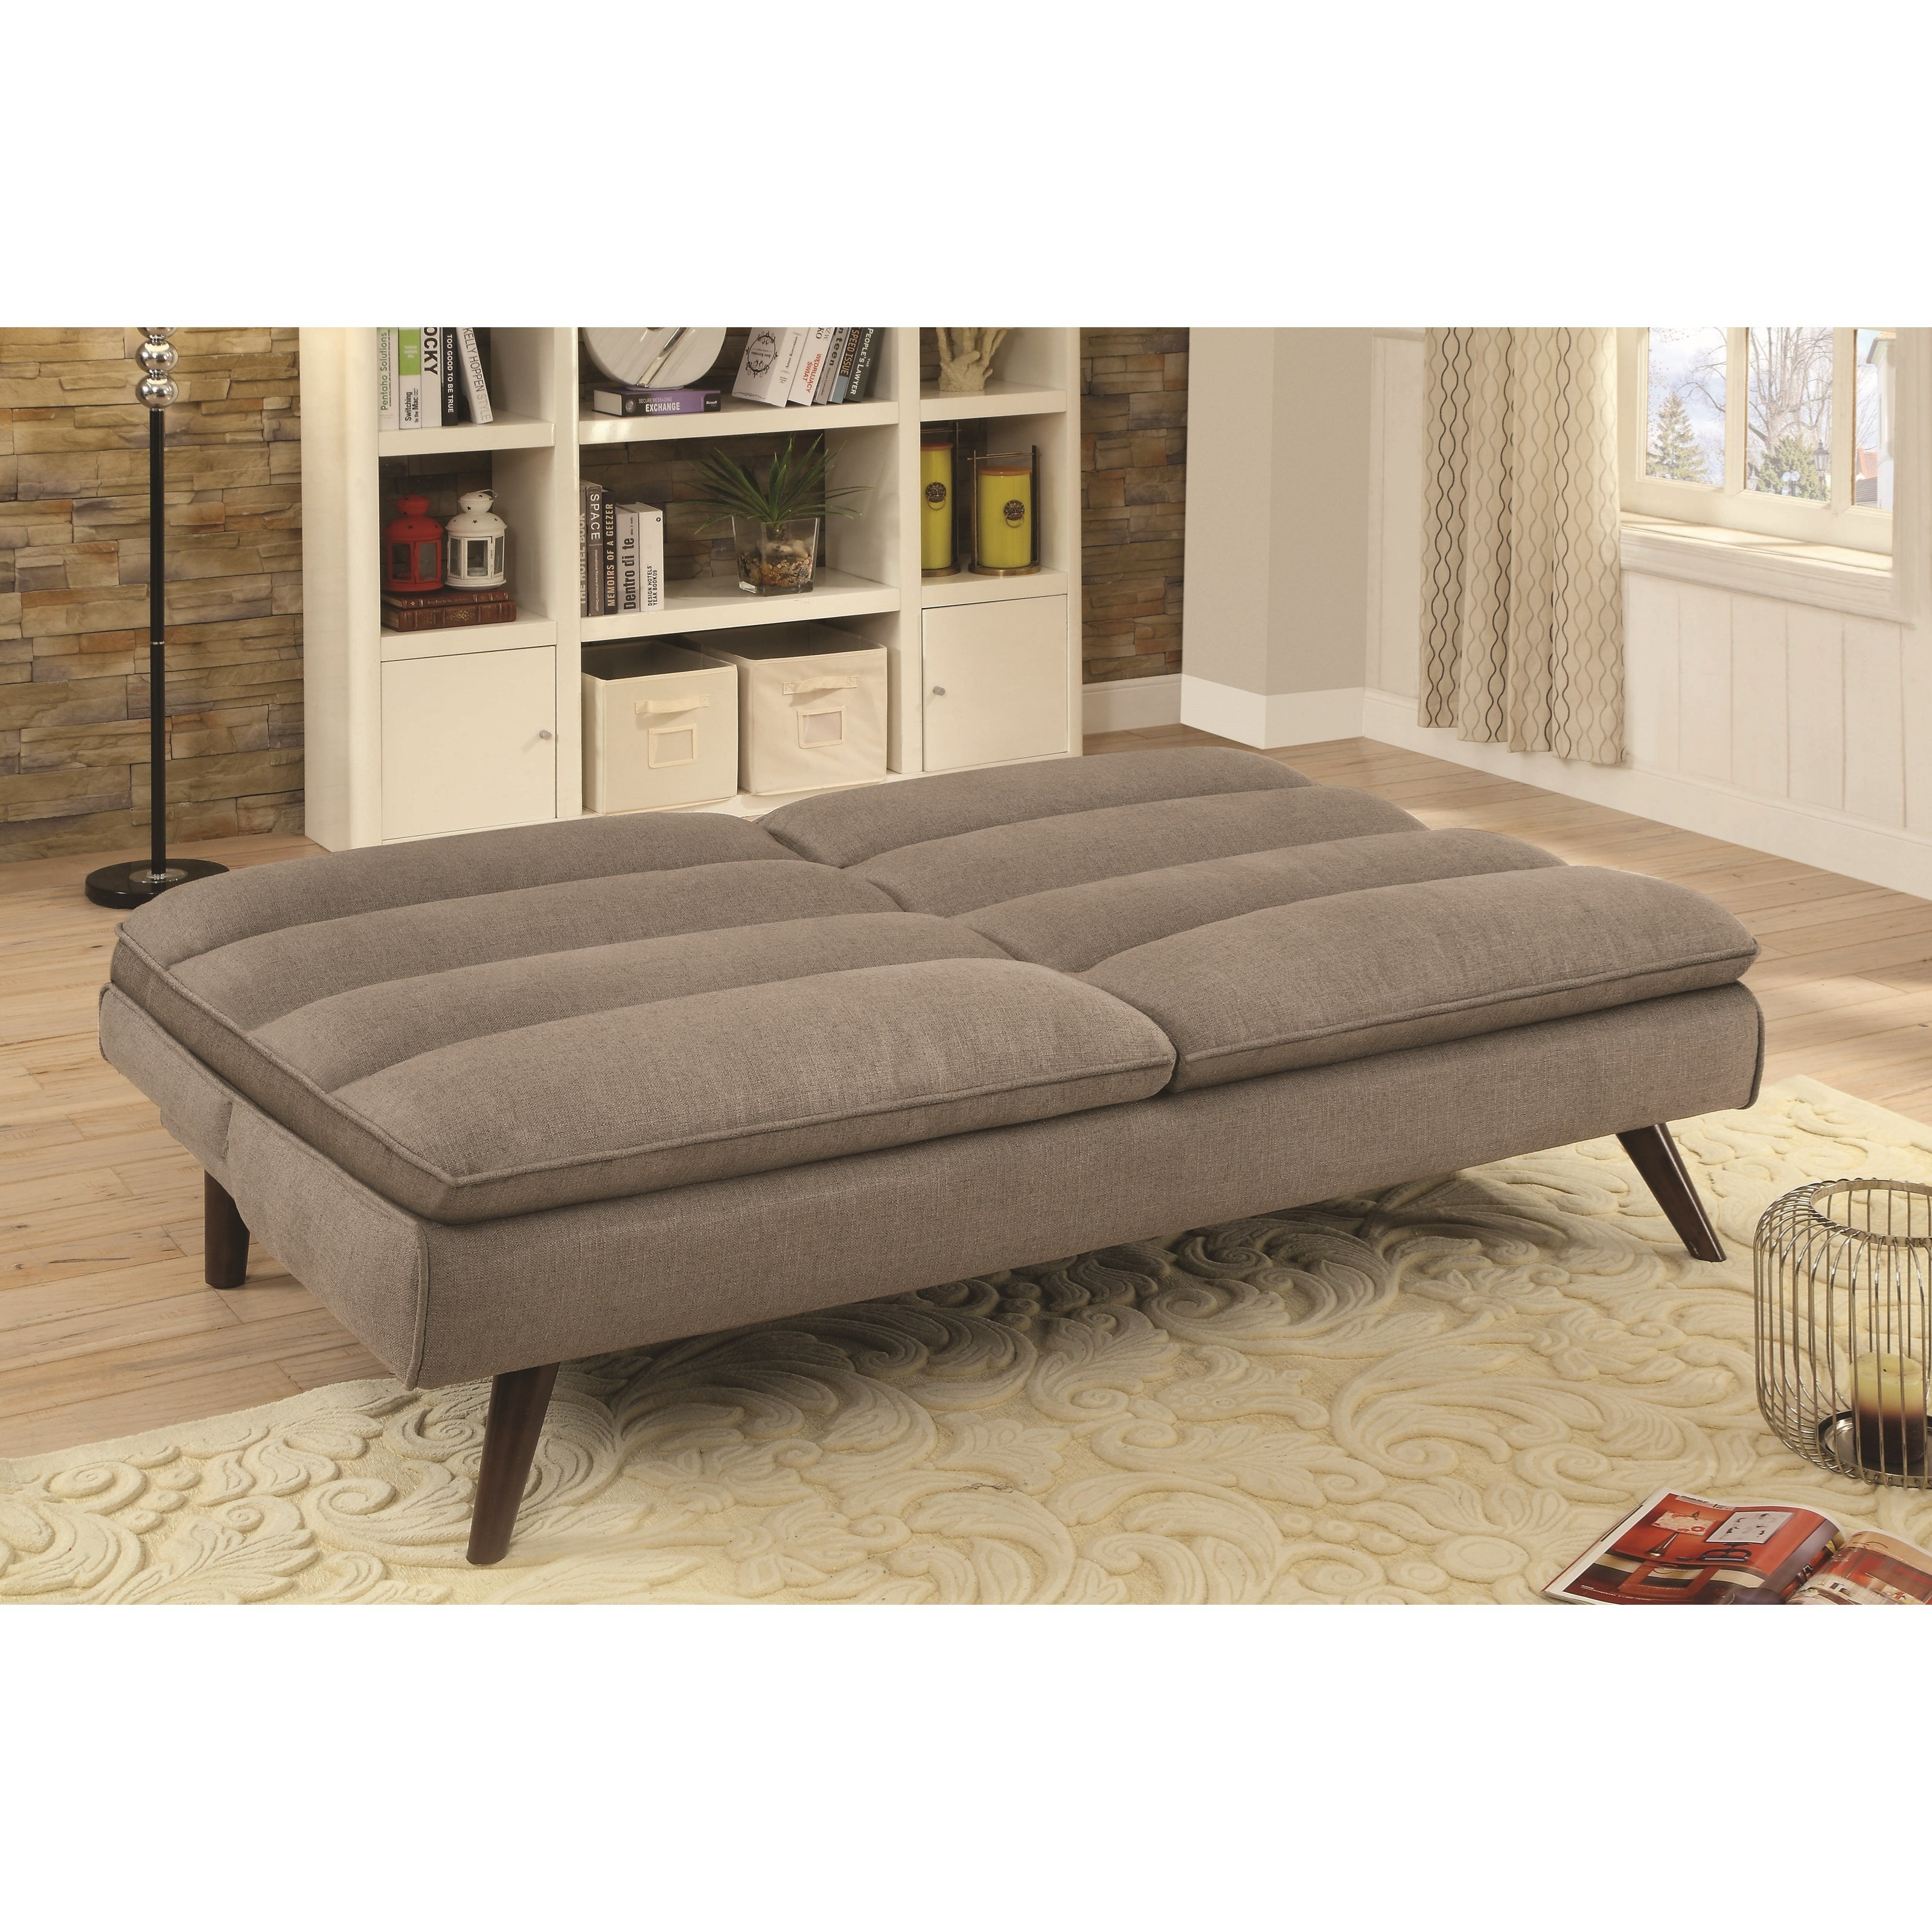 Futons sofa bed with twill fabric quality furniture at for Sofa bed philadelphia